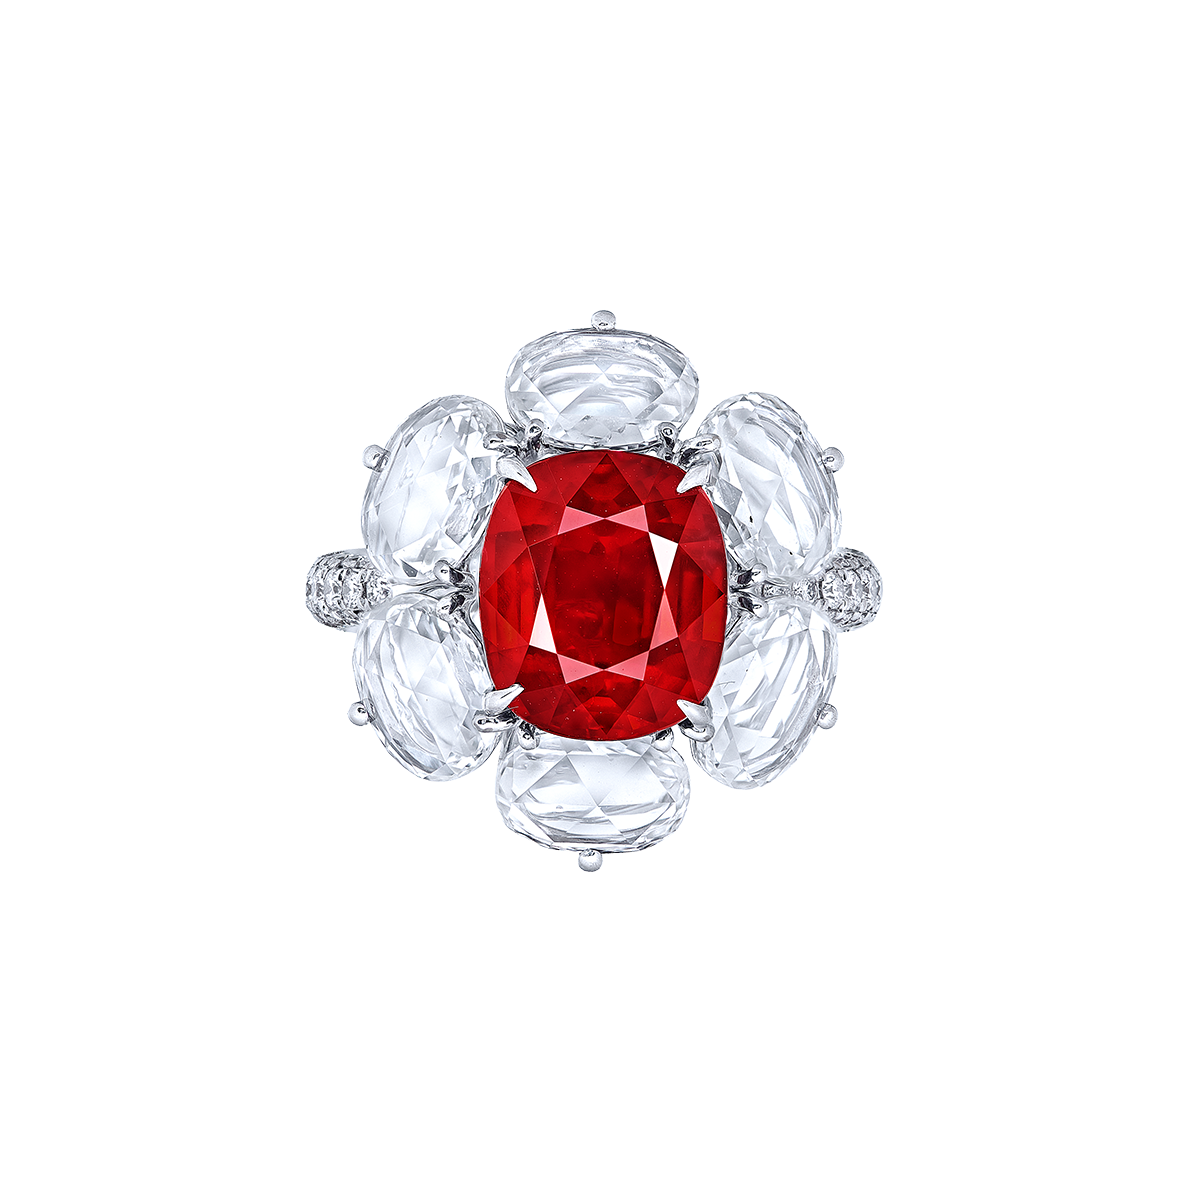 5.01 克拉莫三比克天然無燒鴿血紅紅寶鑽石戒